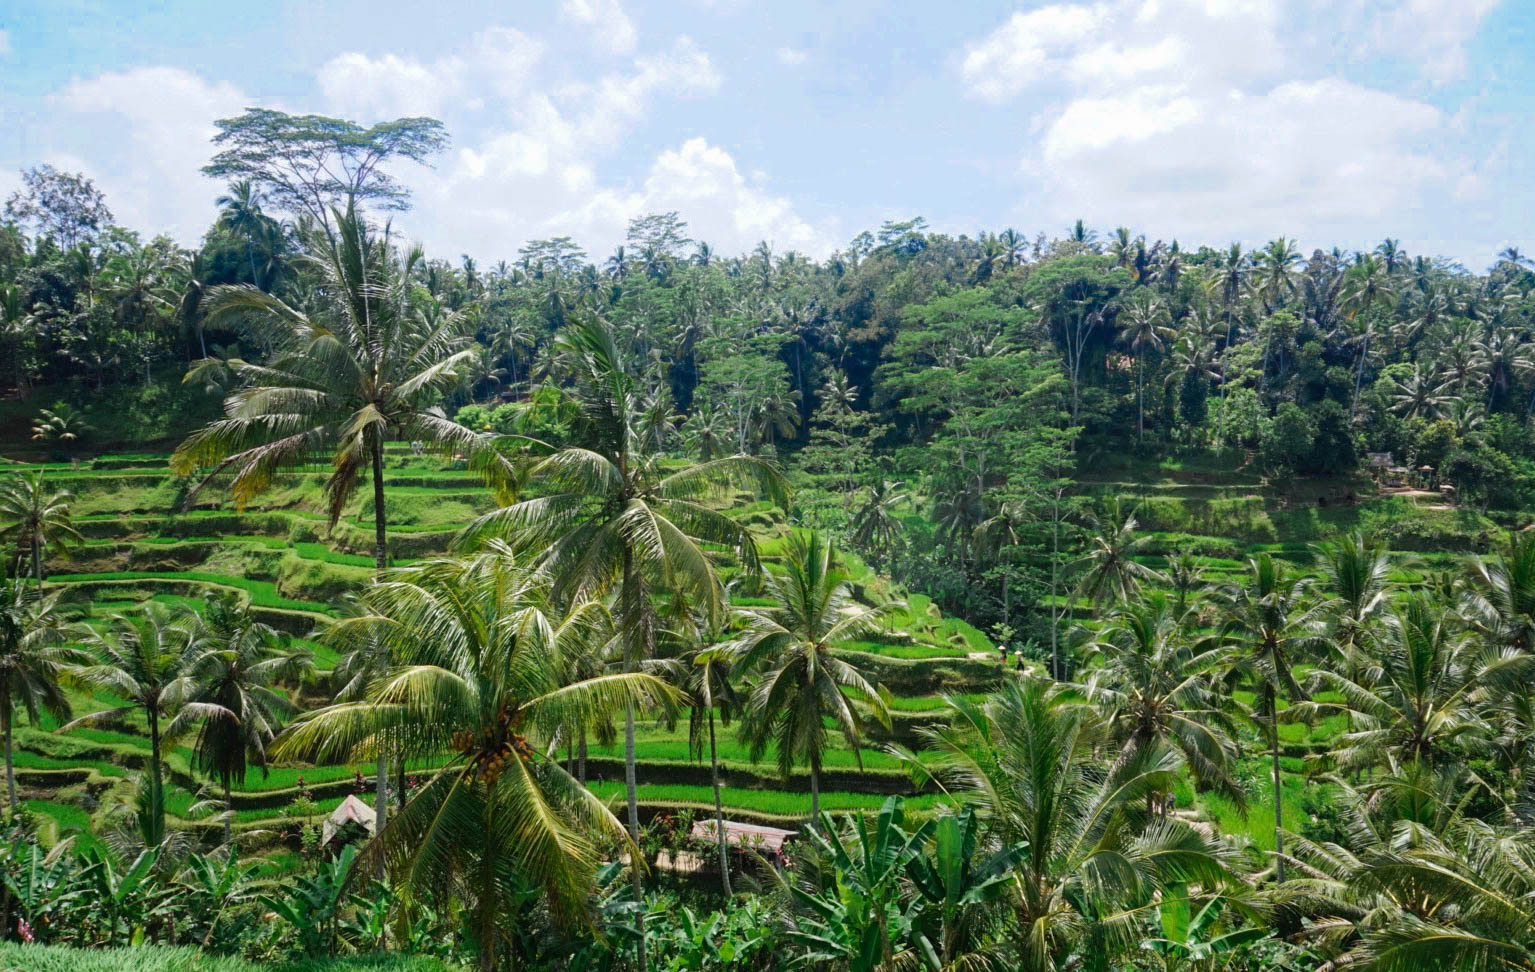 ubud tegallangan riceterrace rice fields